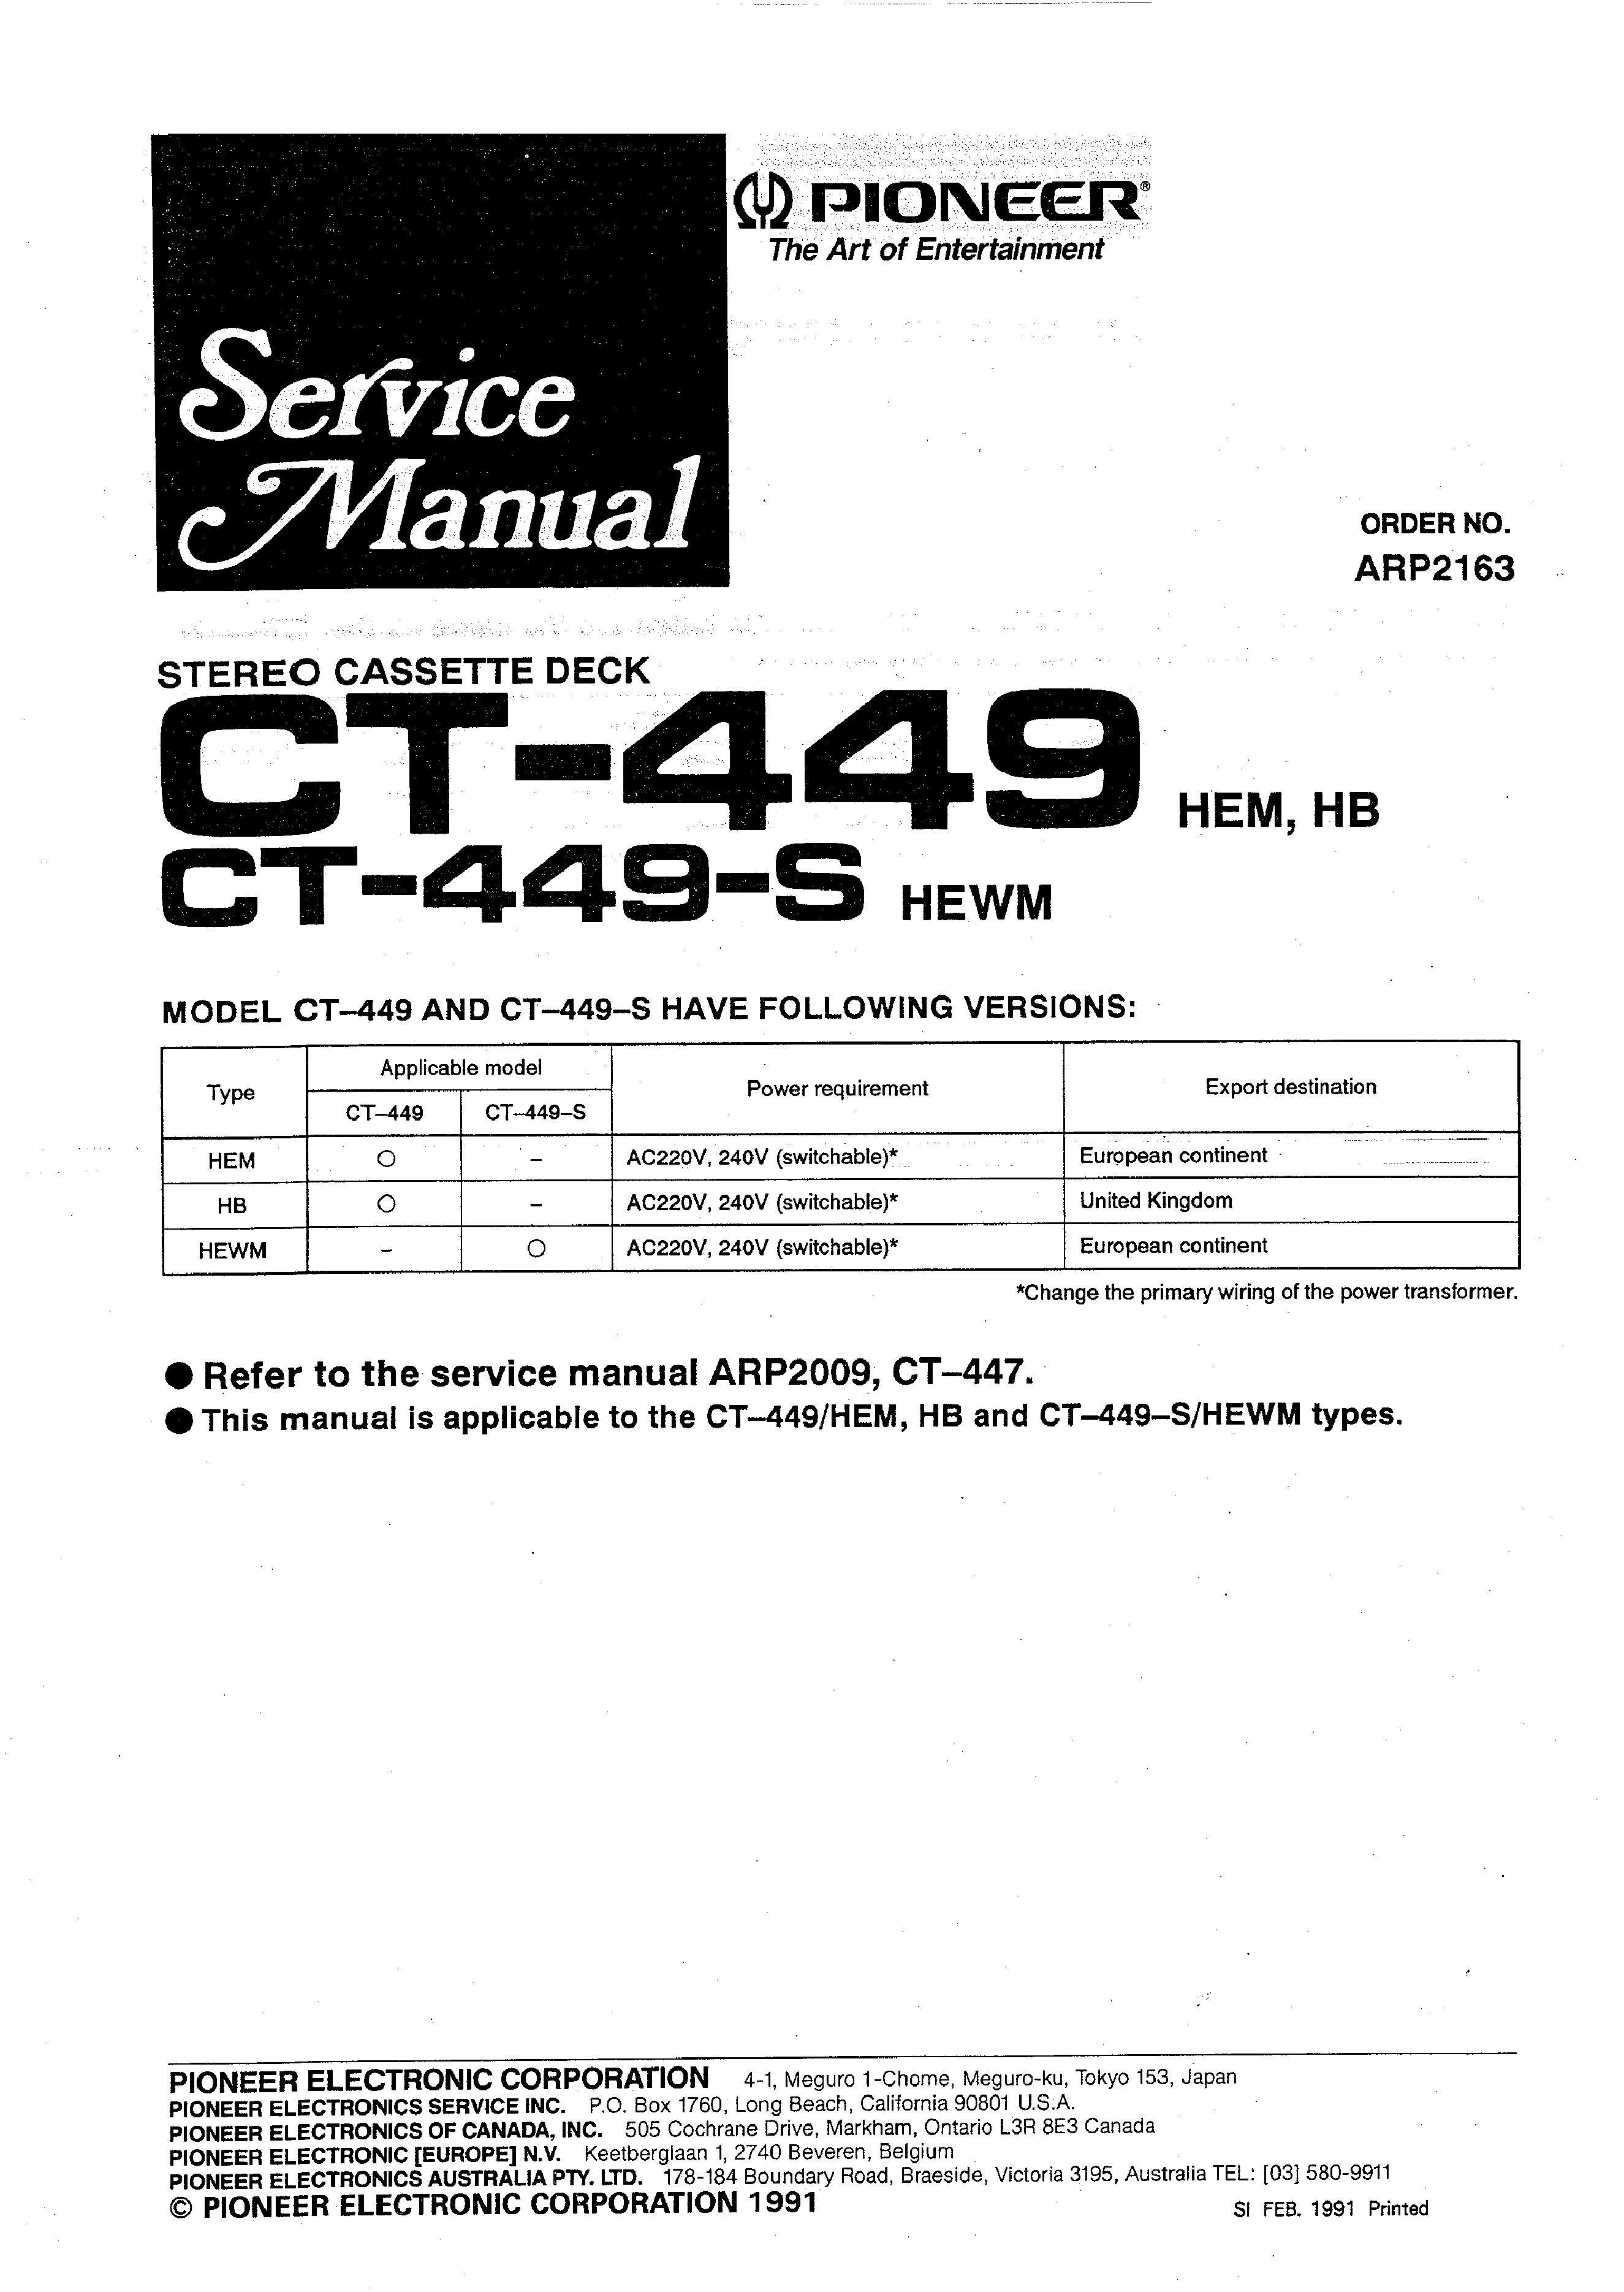 Service Manual For Pioneer Ct-449